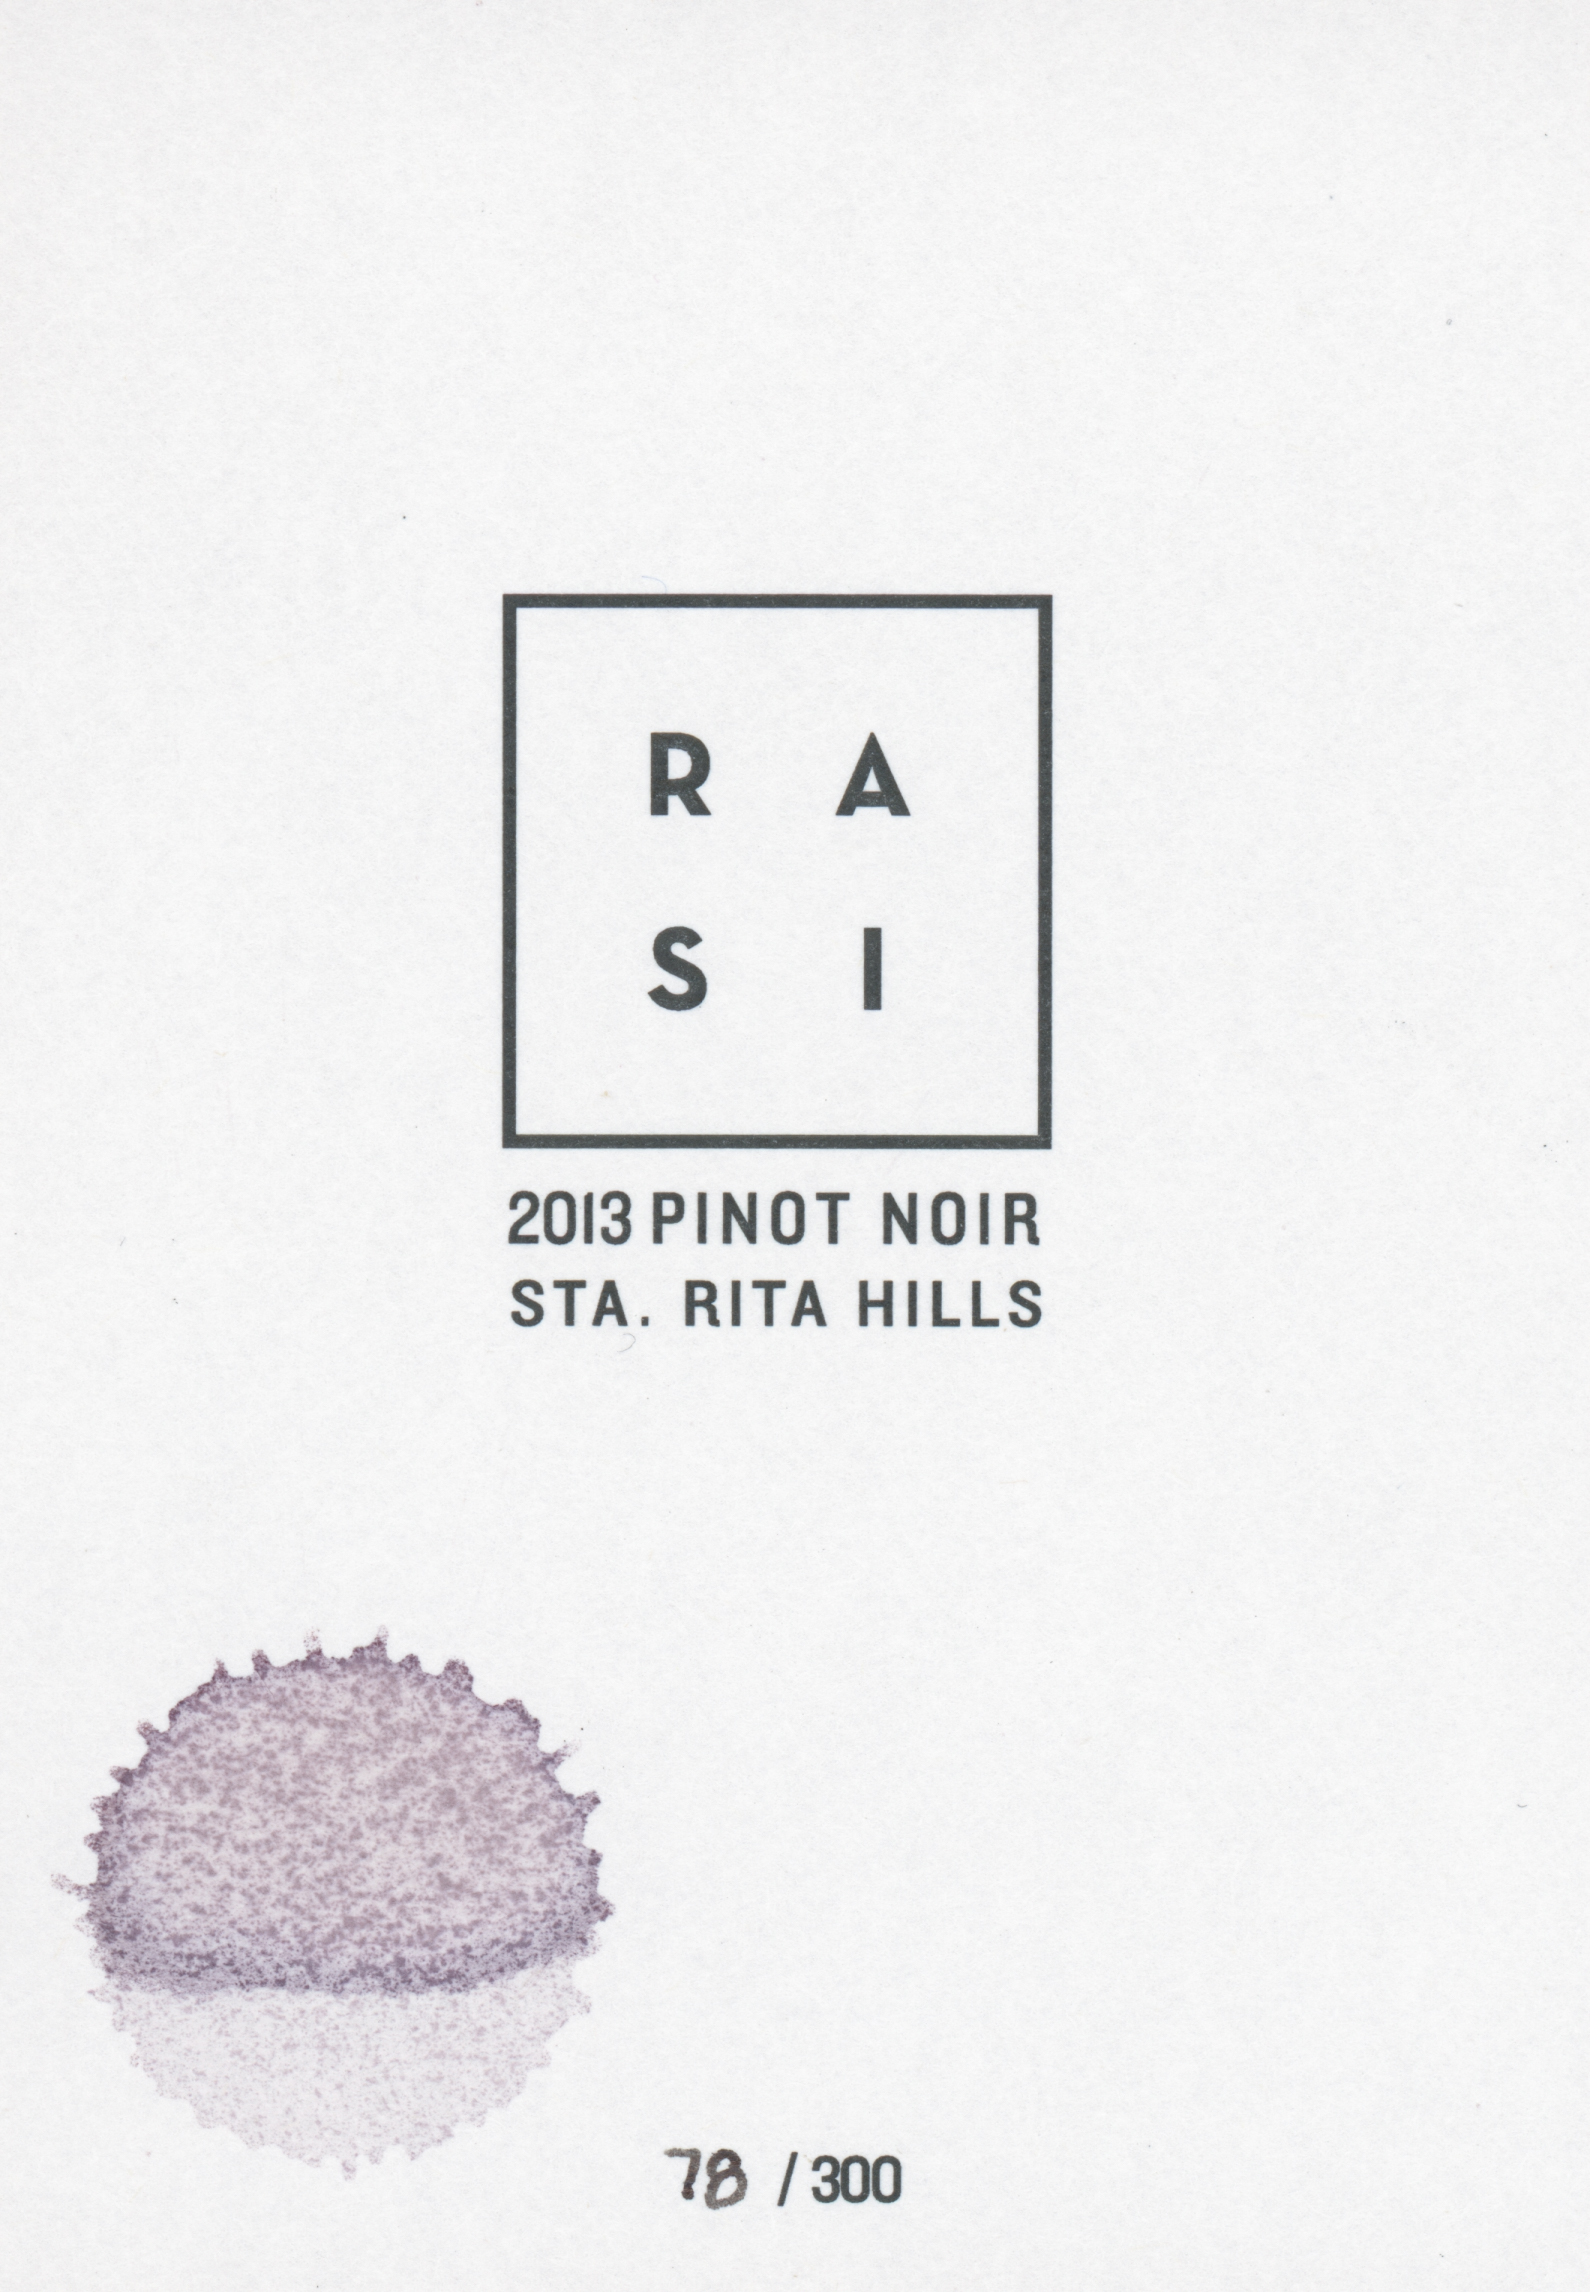 Aaron Seo  February 14, 2015. My 1st bottle of Rasi 78/300!!! Killed this baby. Should've waited for a few months at least :( Love this RASI's label.